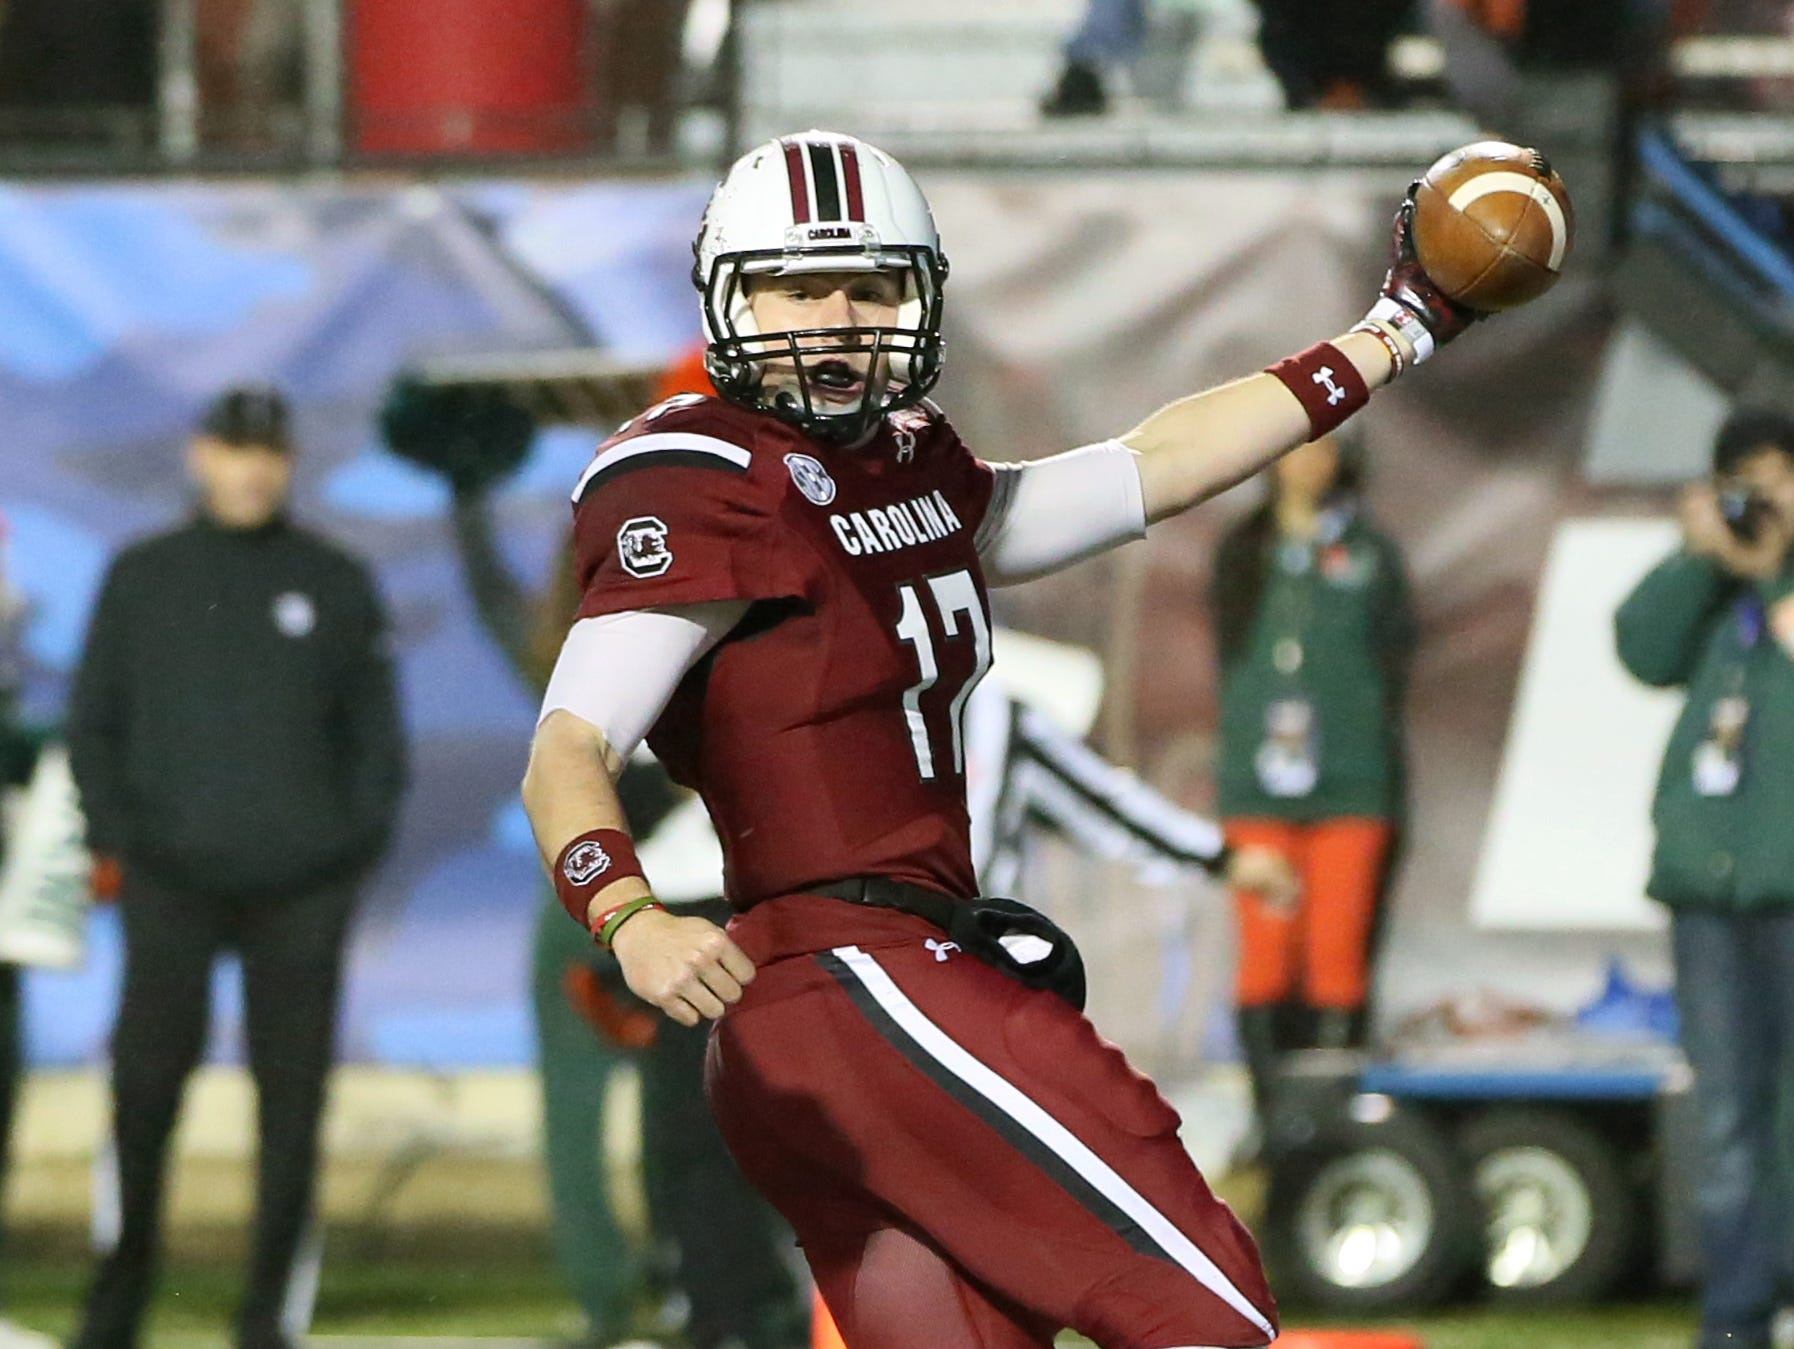 Dec 27, 2014; Shreveport, LA, USA; South Carolina Gamecocks quarterback Dylan Thompson (17) scores a touchdown during the fourth quarter against the Miami Hurricanes in the 2014 Independence Bowl at Independence Stadium. South Carolina defeated Miami 24-21.